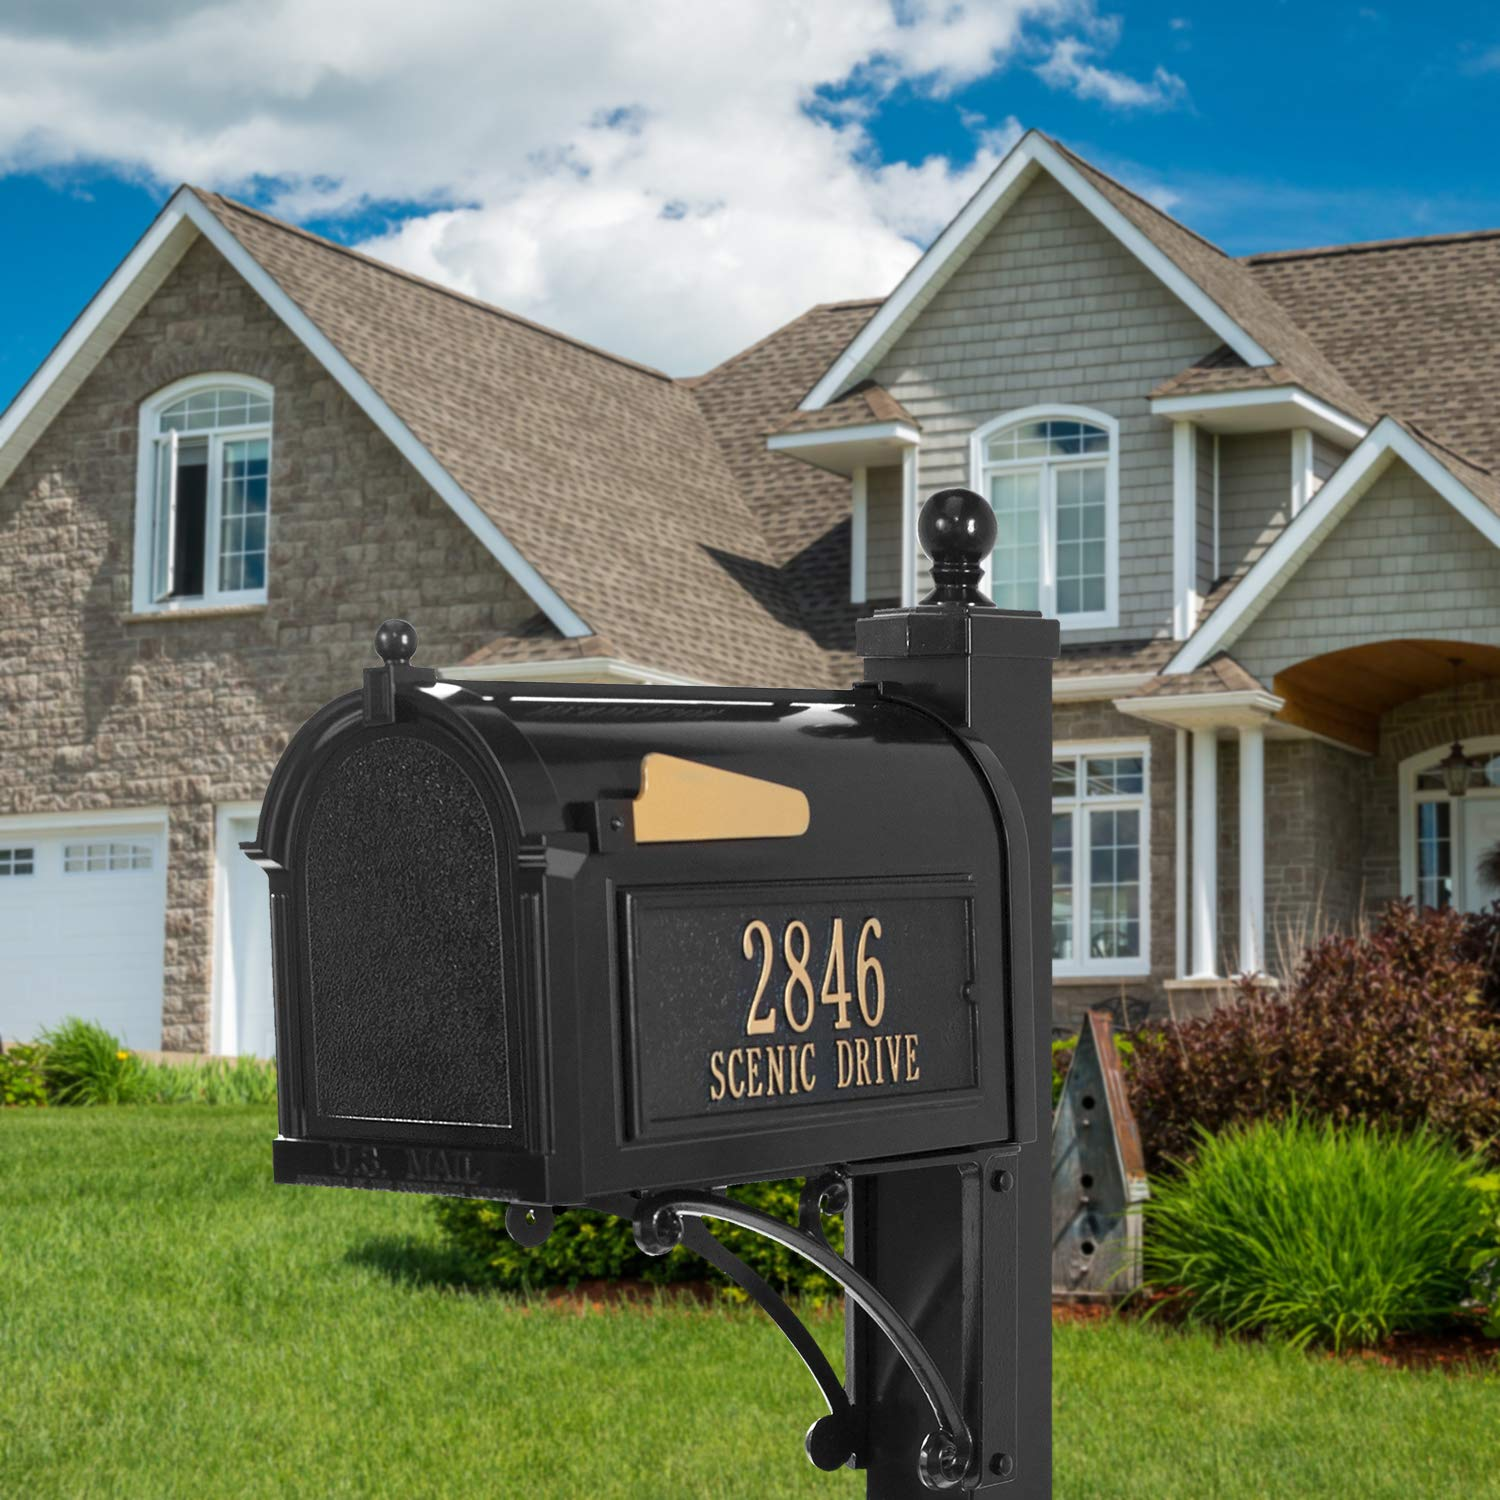 Whitehall Products Deluxe Mailbox Package - Black by Whitehall (Image #3)